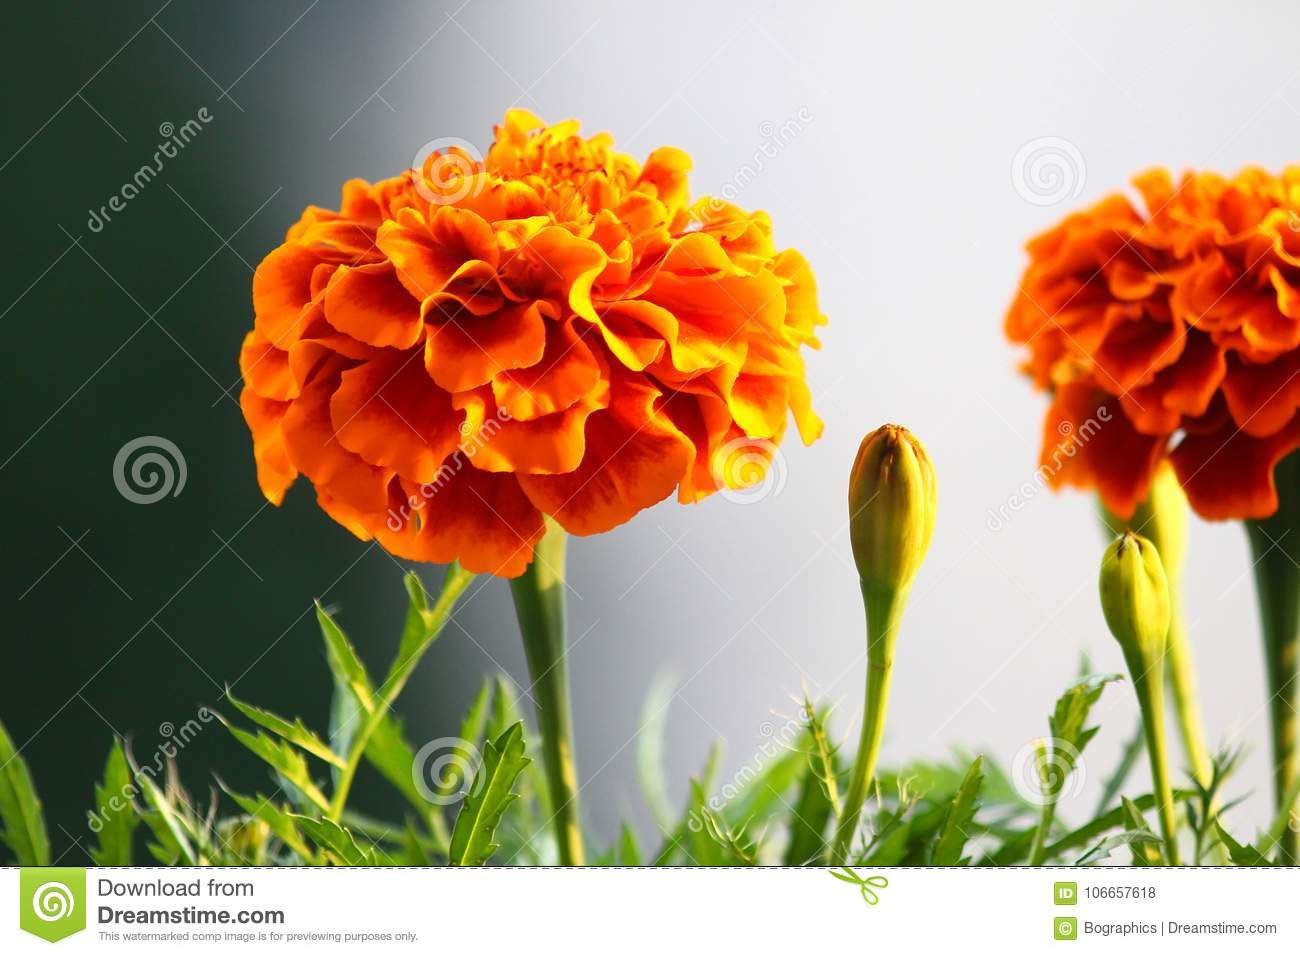 French Marigold flower in foreground